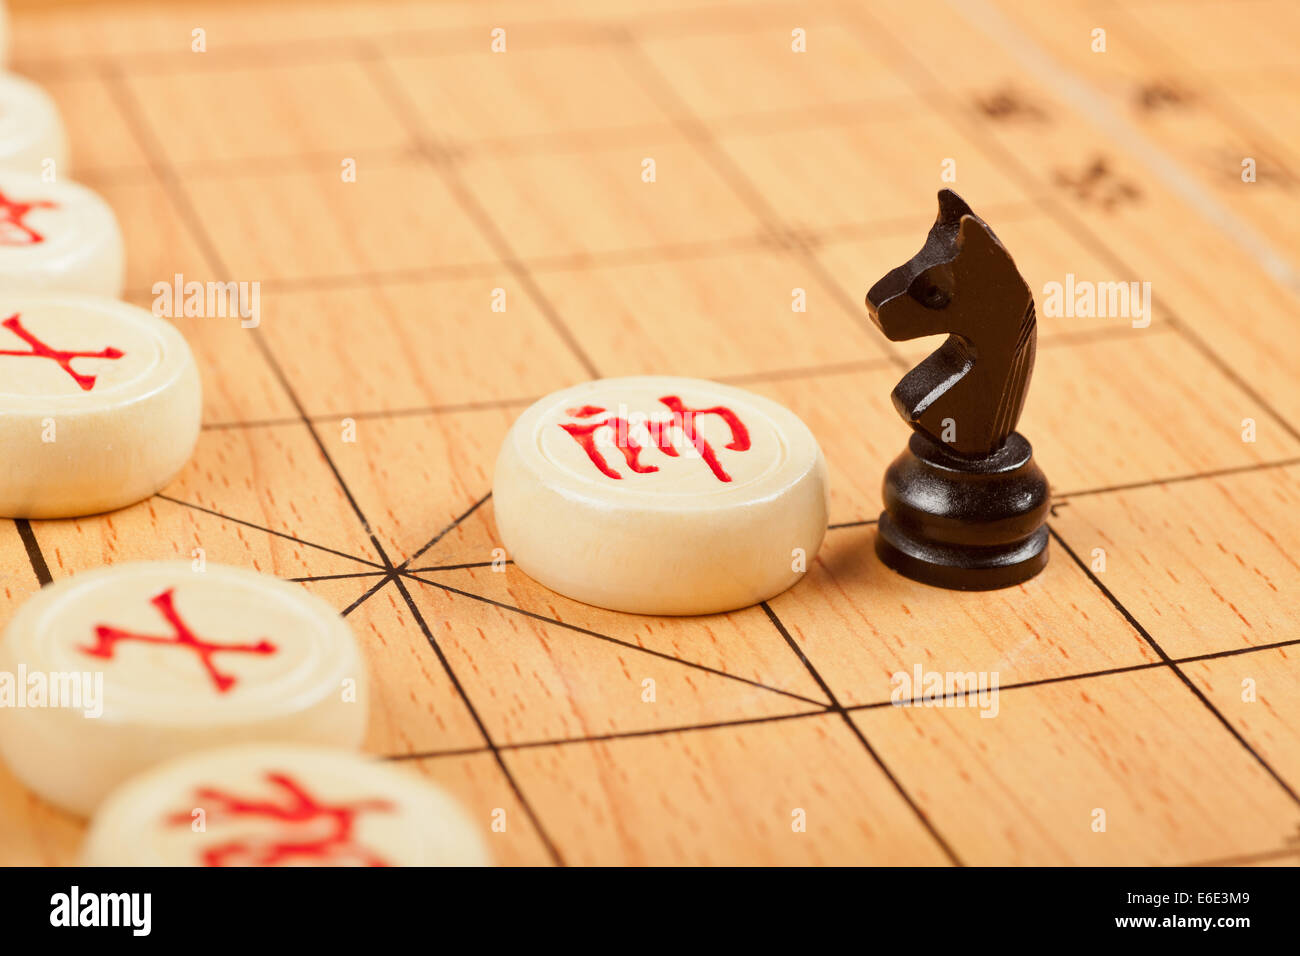 Western chess piece on Chinese chess board - Stock Image